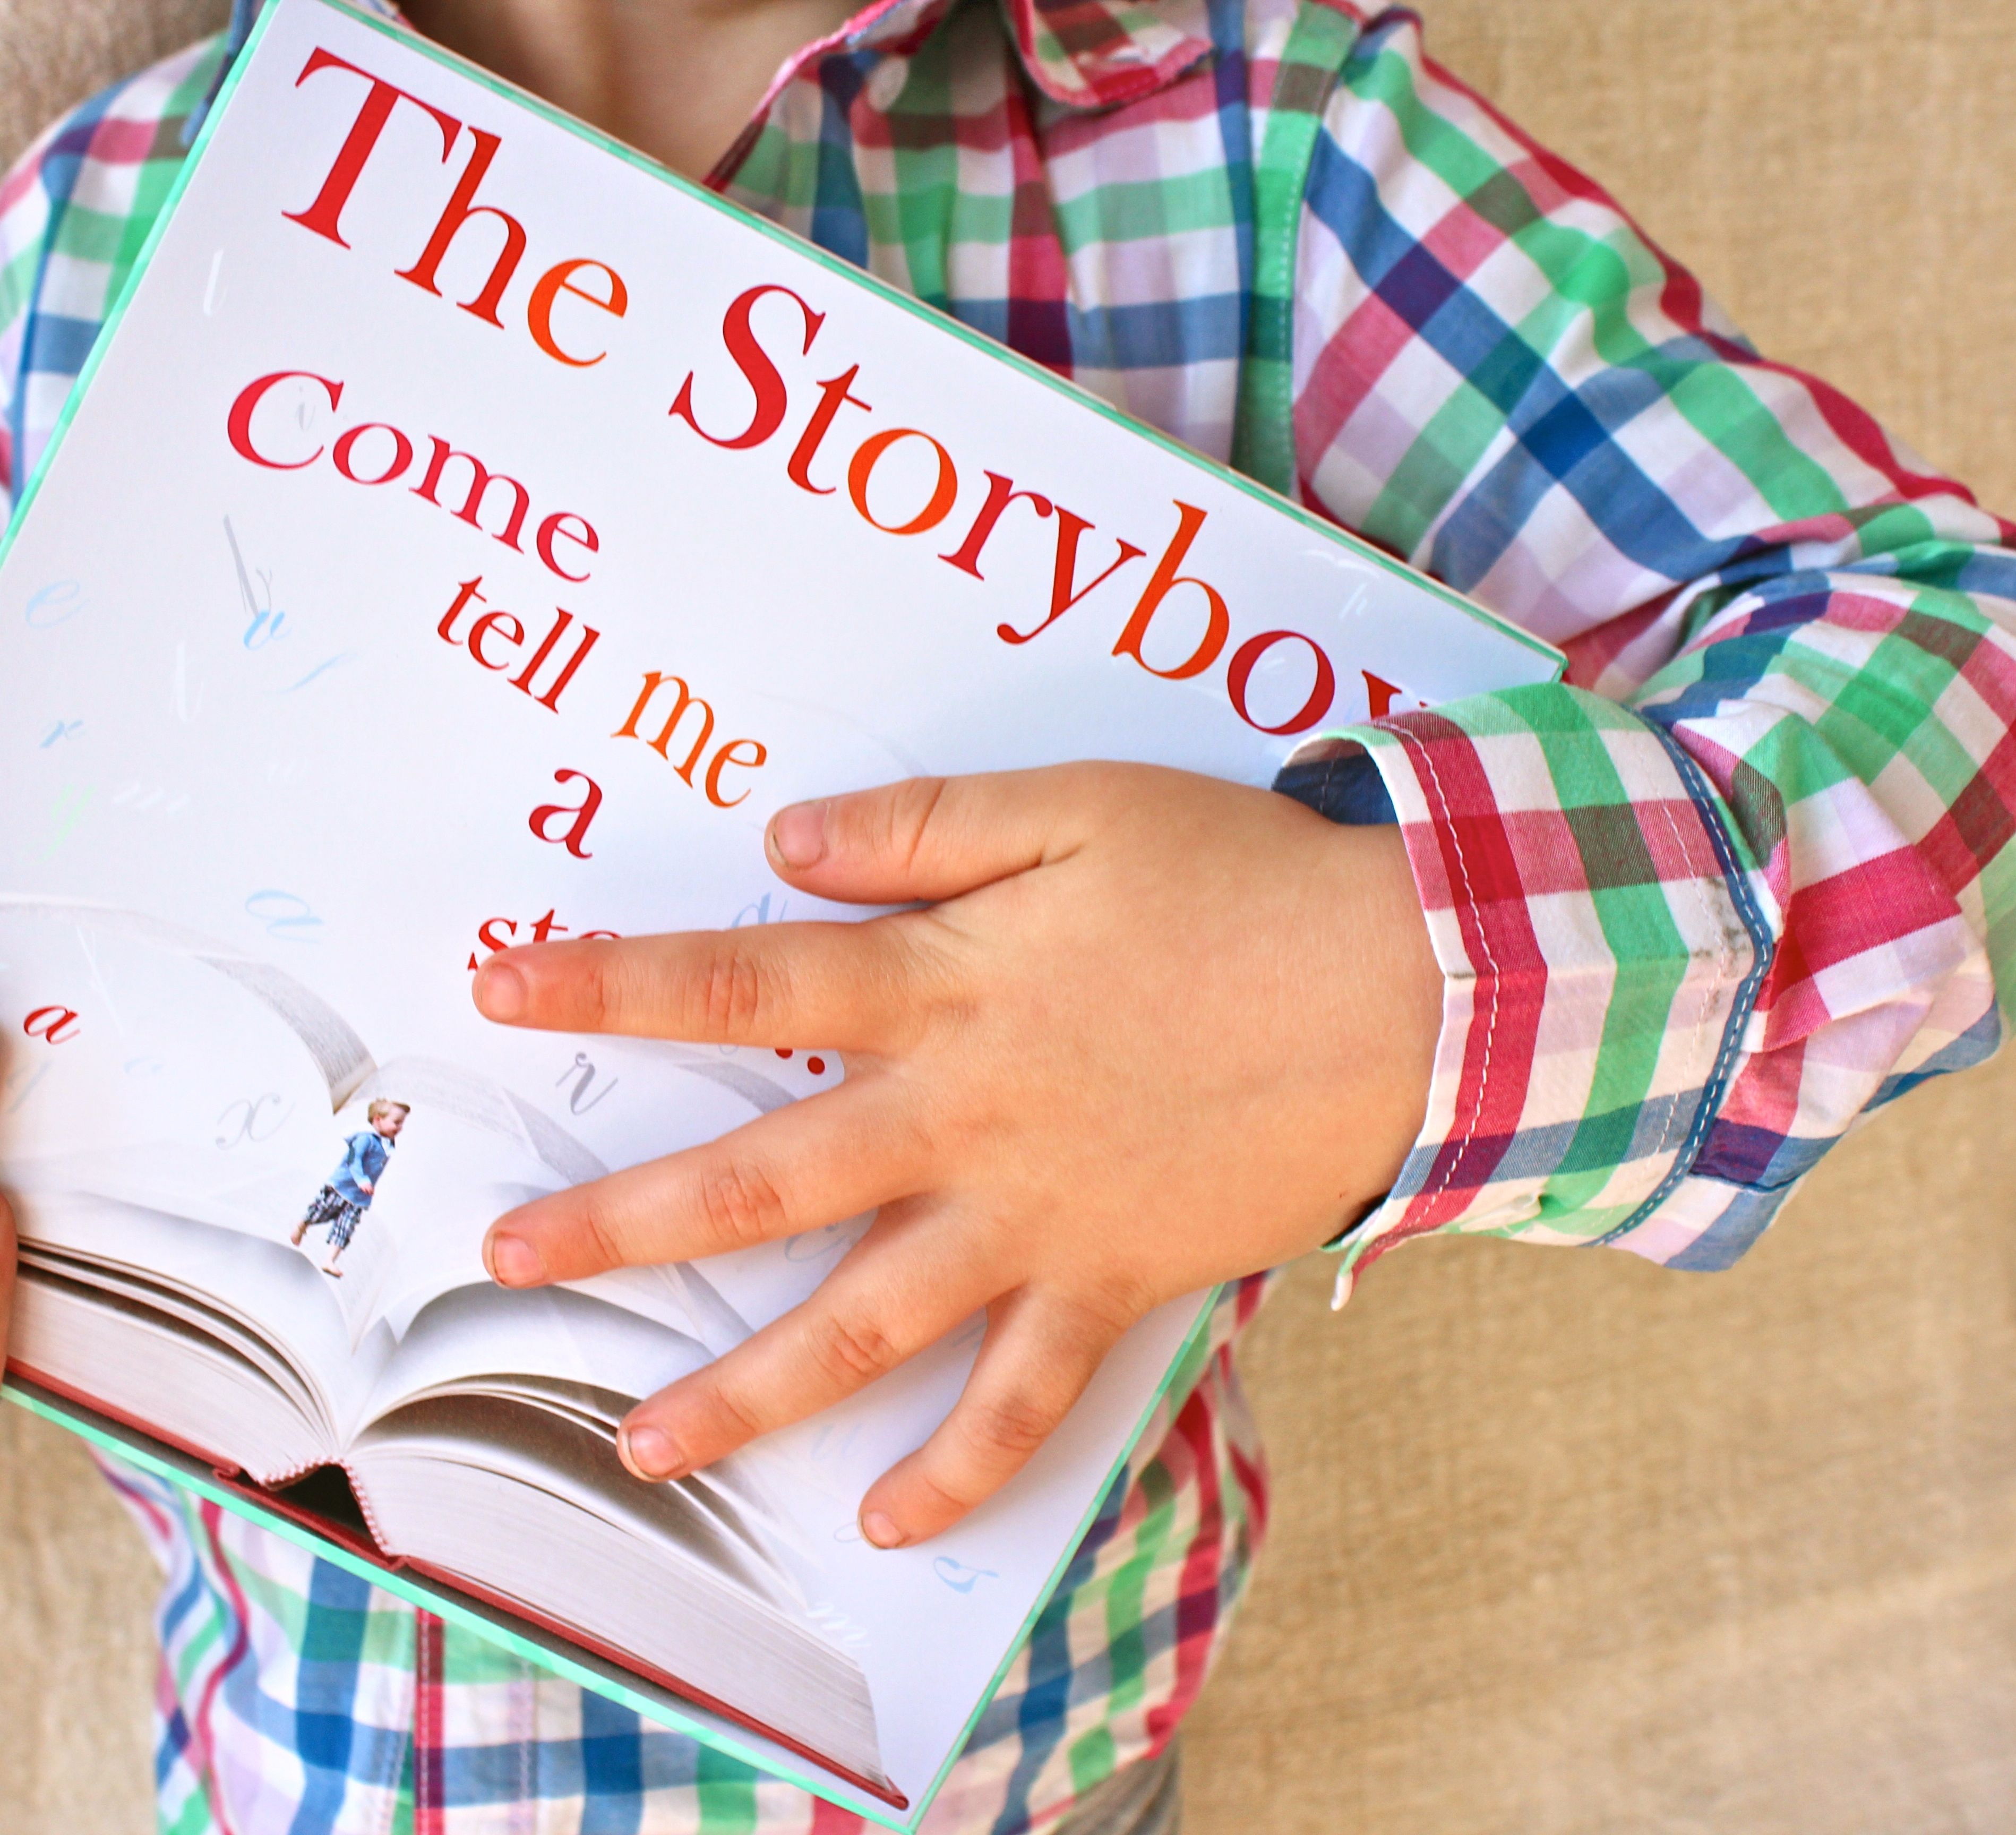 The StoryBox Game